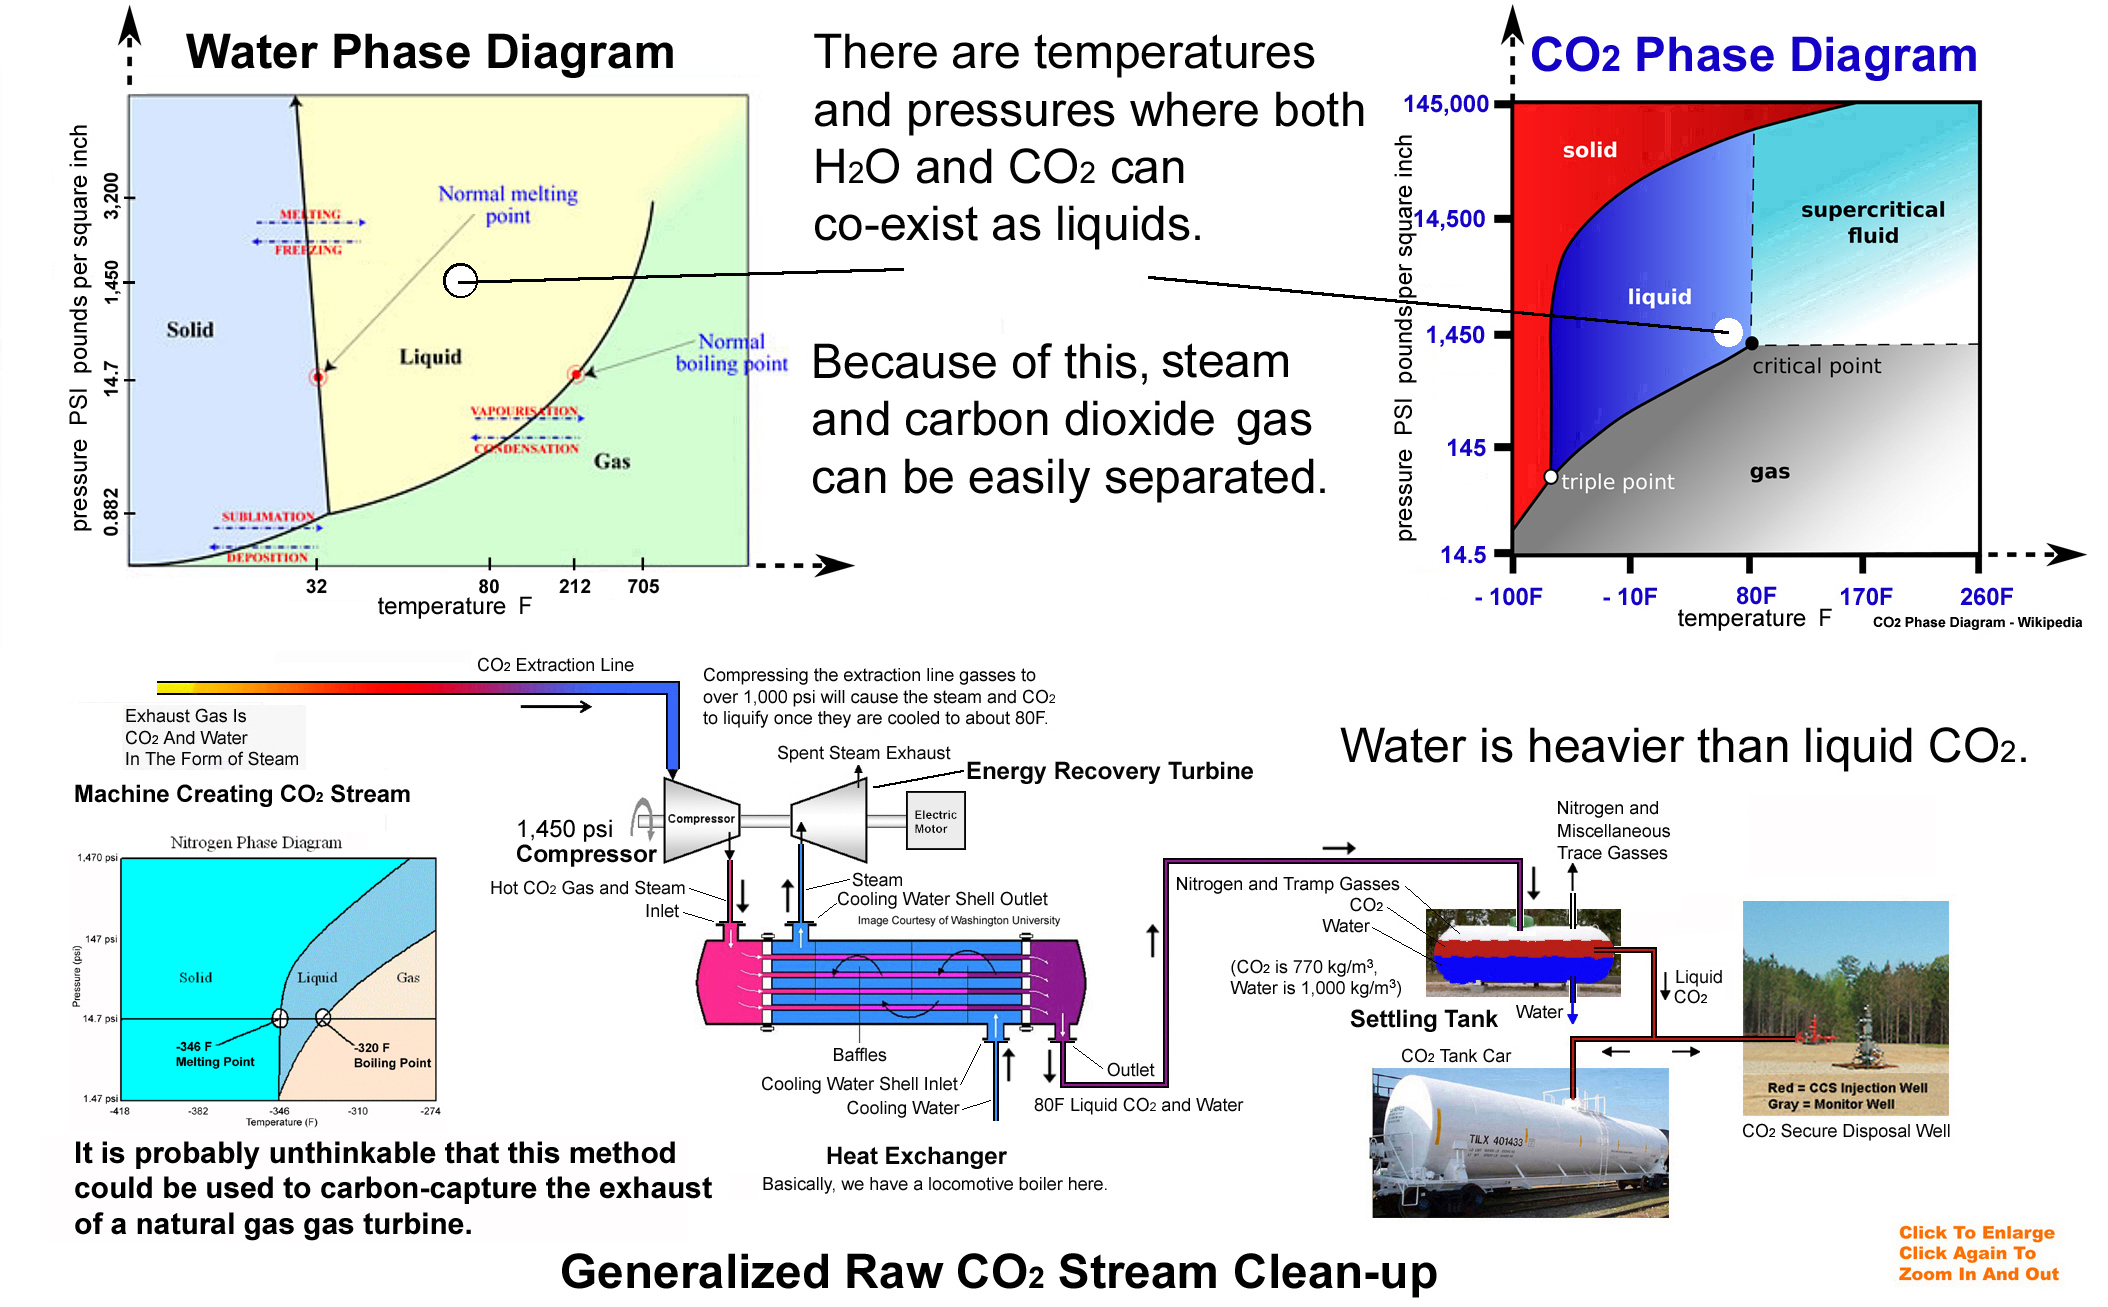 Recycling Coal Power Plants 500 Mw Plant Diagram Incredibly Many Small Old Are Located Near Depleted Oil Fields An Excellent Place To Salvage And Dispose Of The Co2 Burning